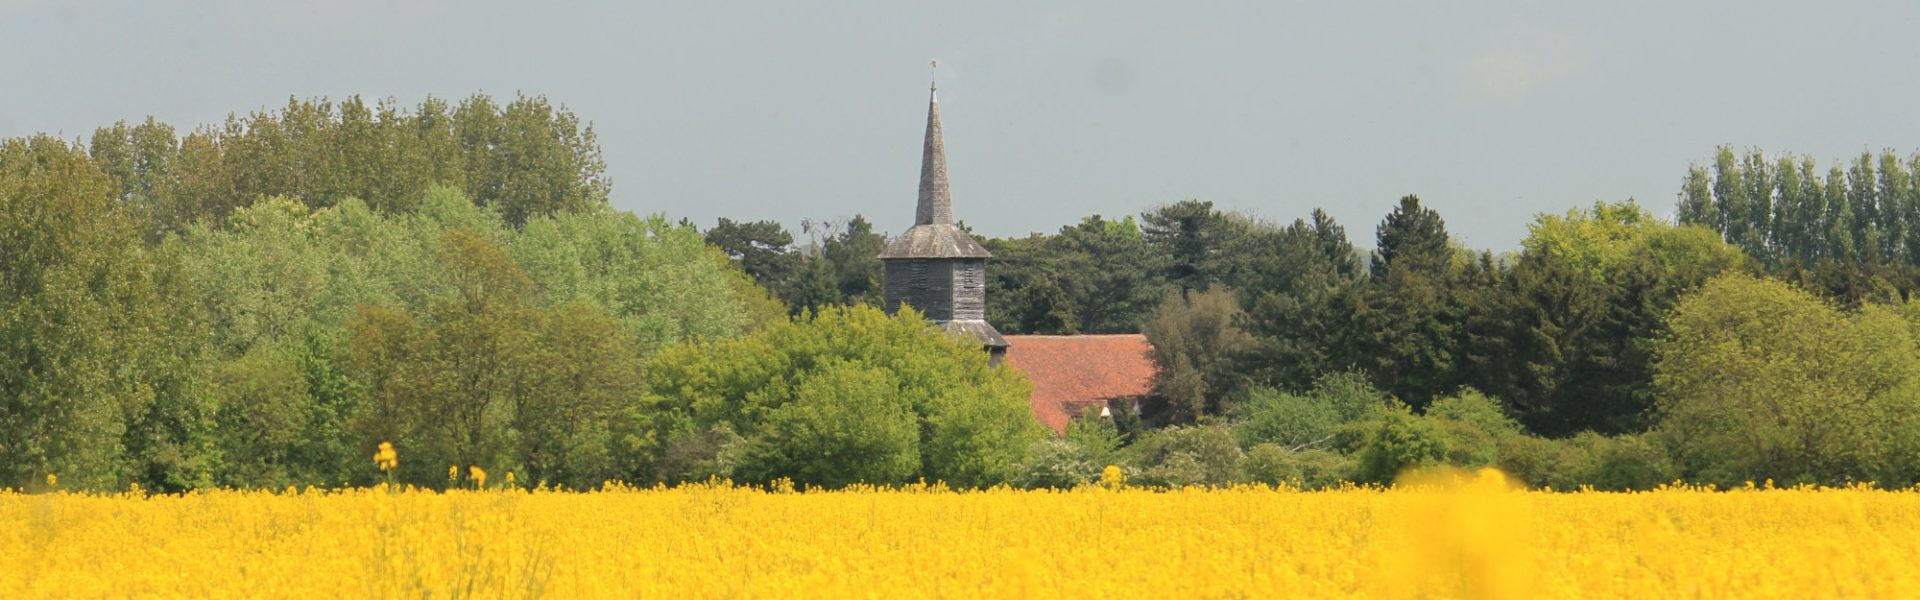 A summer view across open farm land towards the bell tower of St Laurence church.